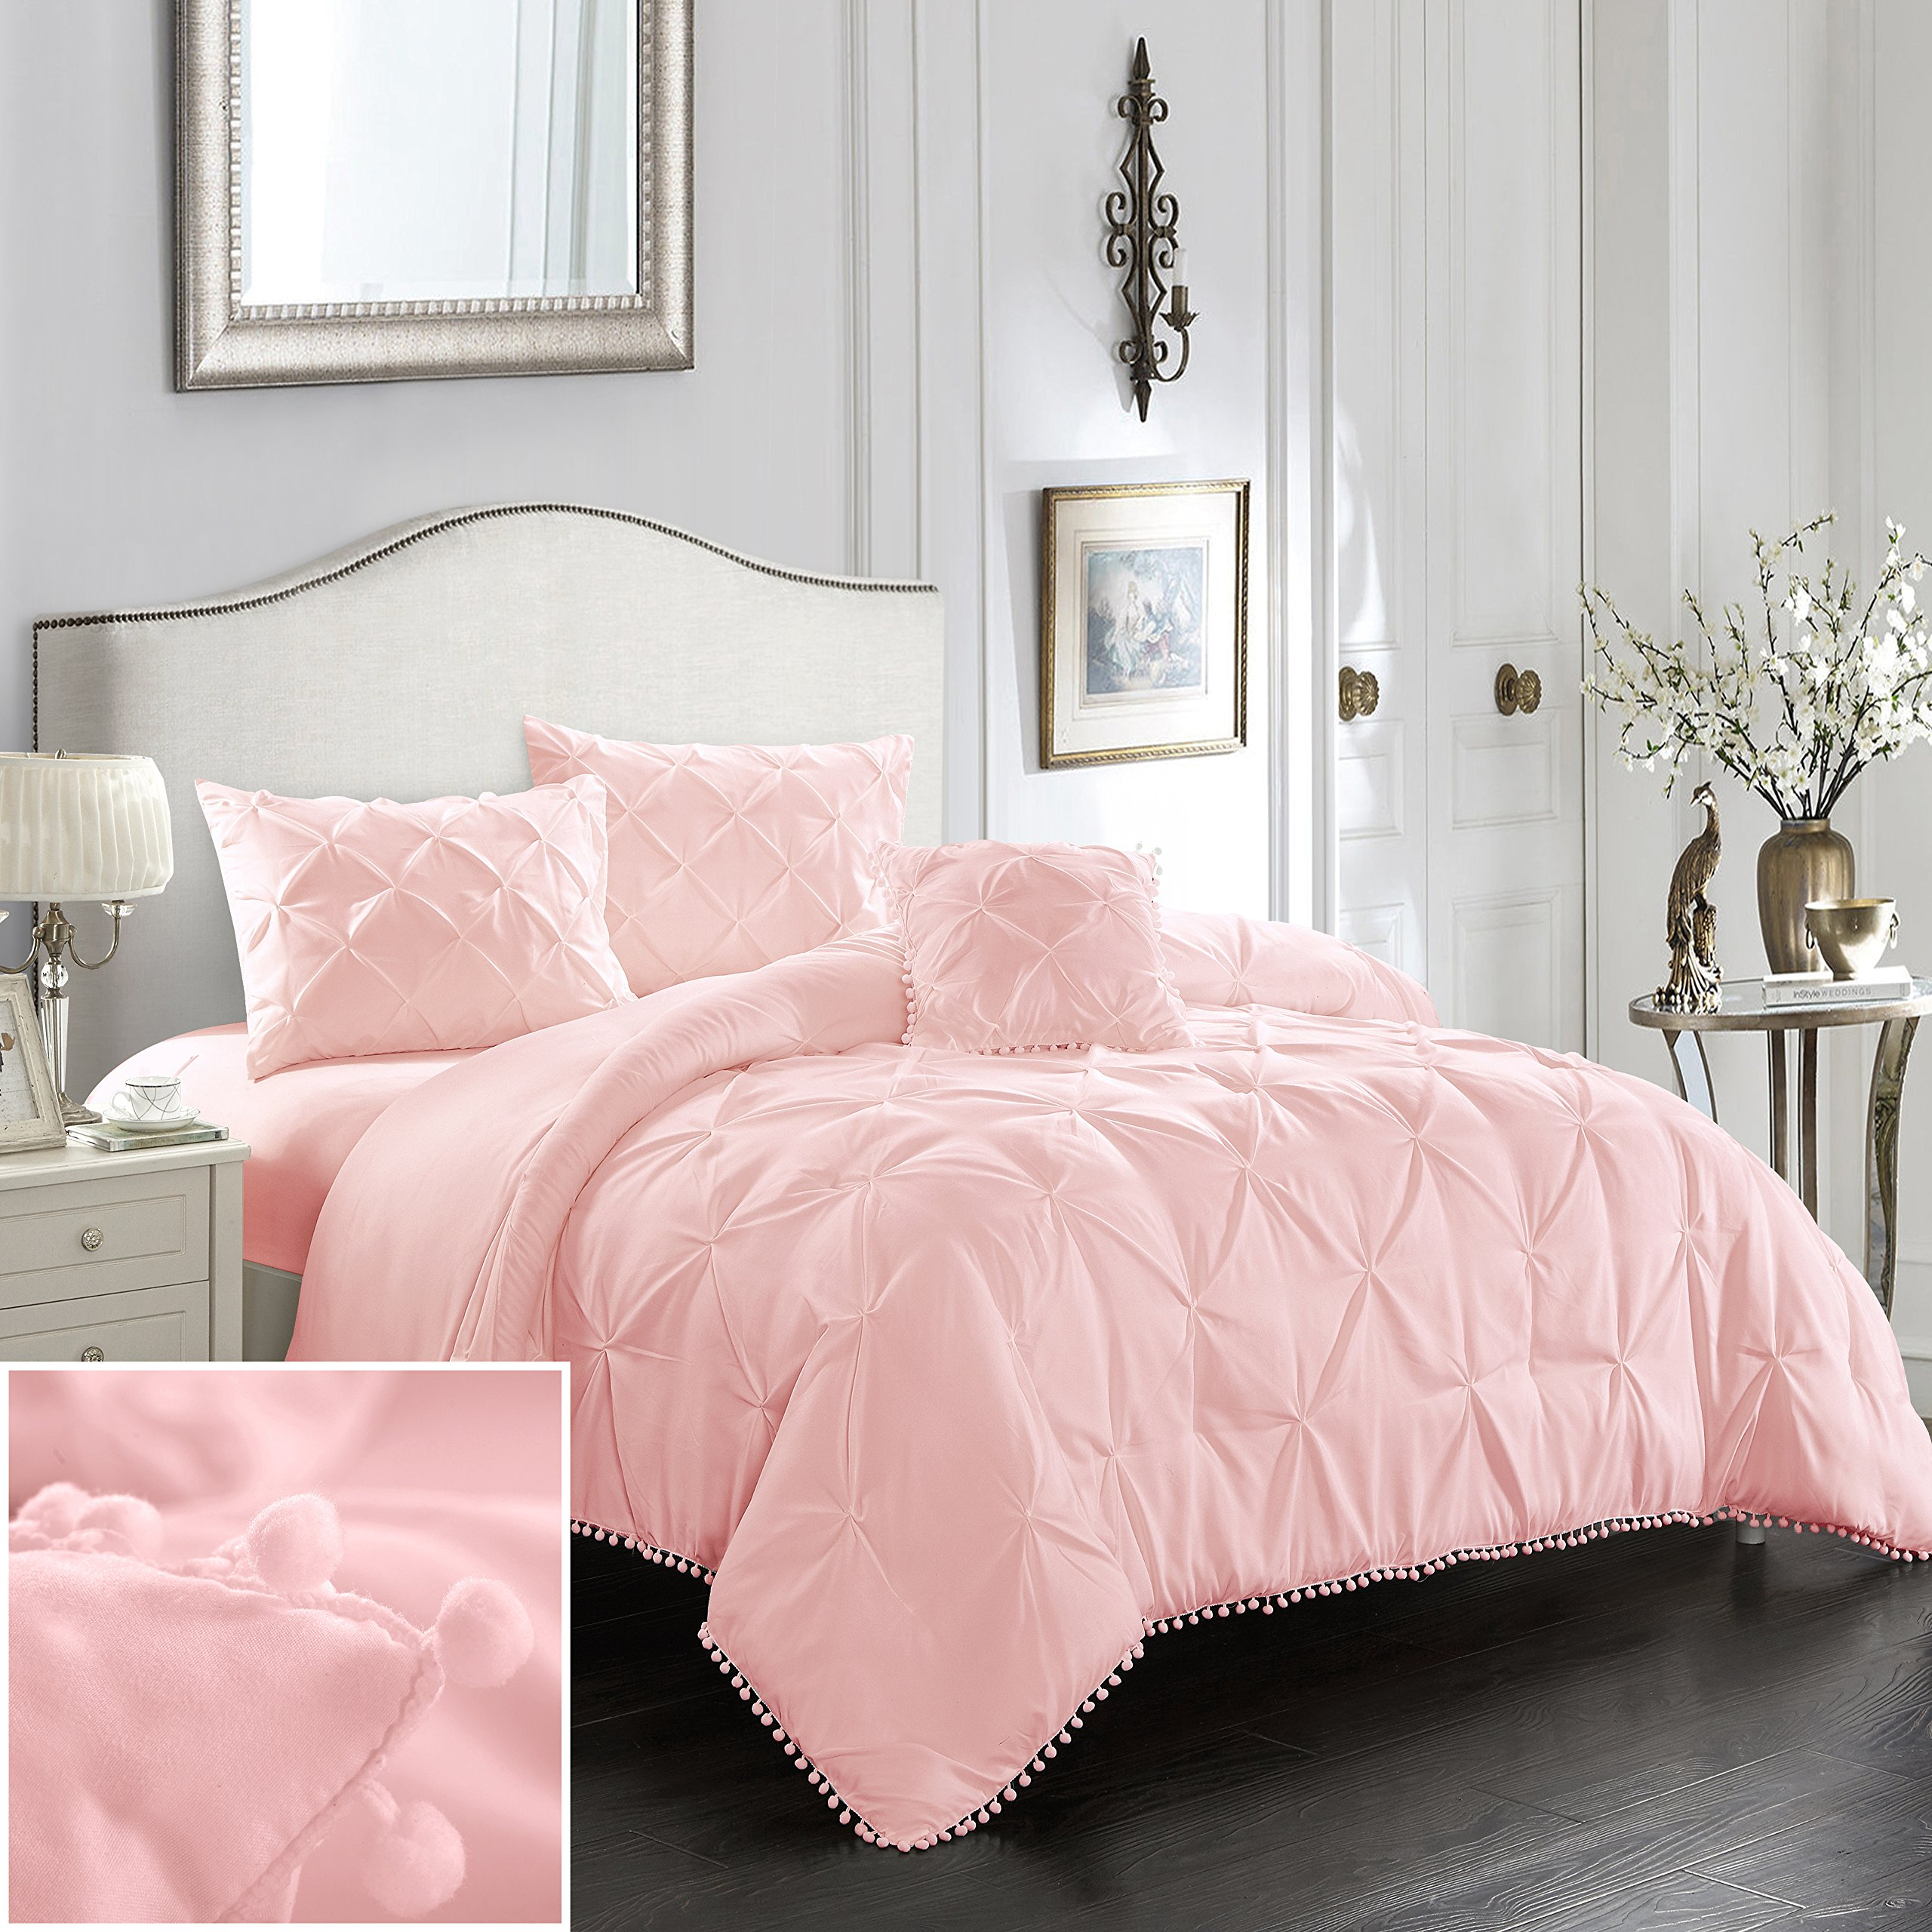 EVOLIVE 3pc Set Pinch Pleat/Kiss Pleat, Pintuck Down Alternative Comforter Set with Pompom (Twin, Pink) by EVOLIVE (Image #1)